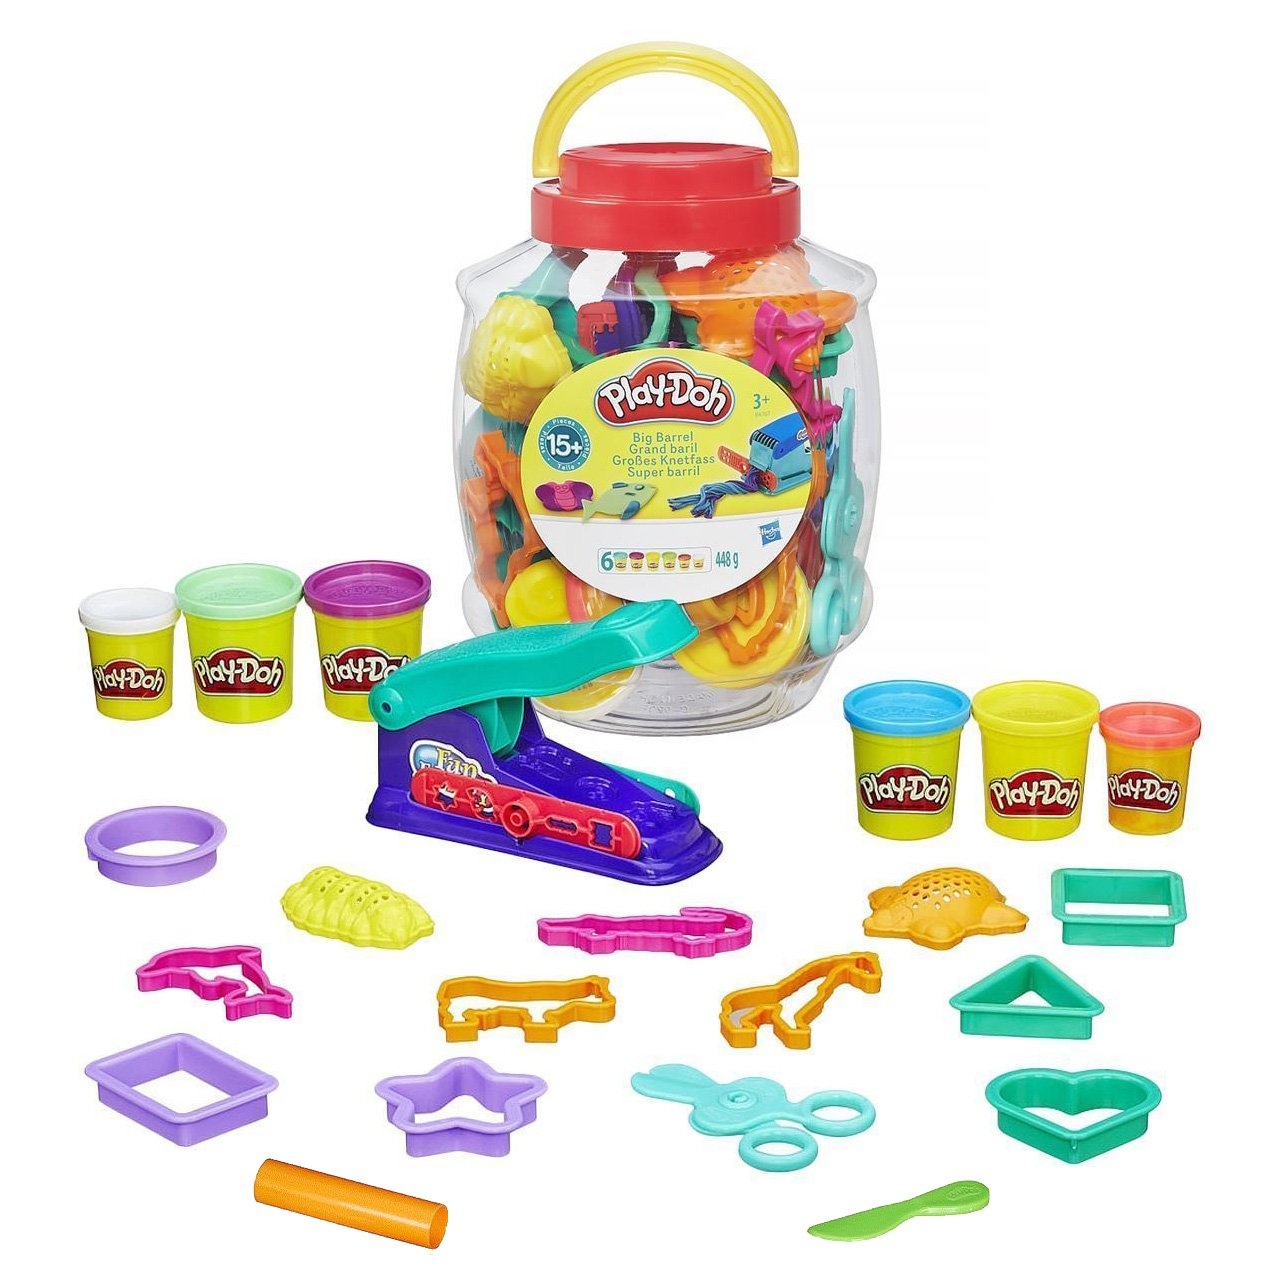 Hasbro - 334357862 - Loisir Créatif - Play Doh - Baril Transparent Play product image